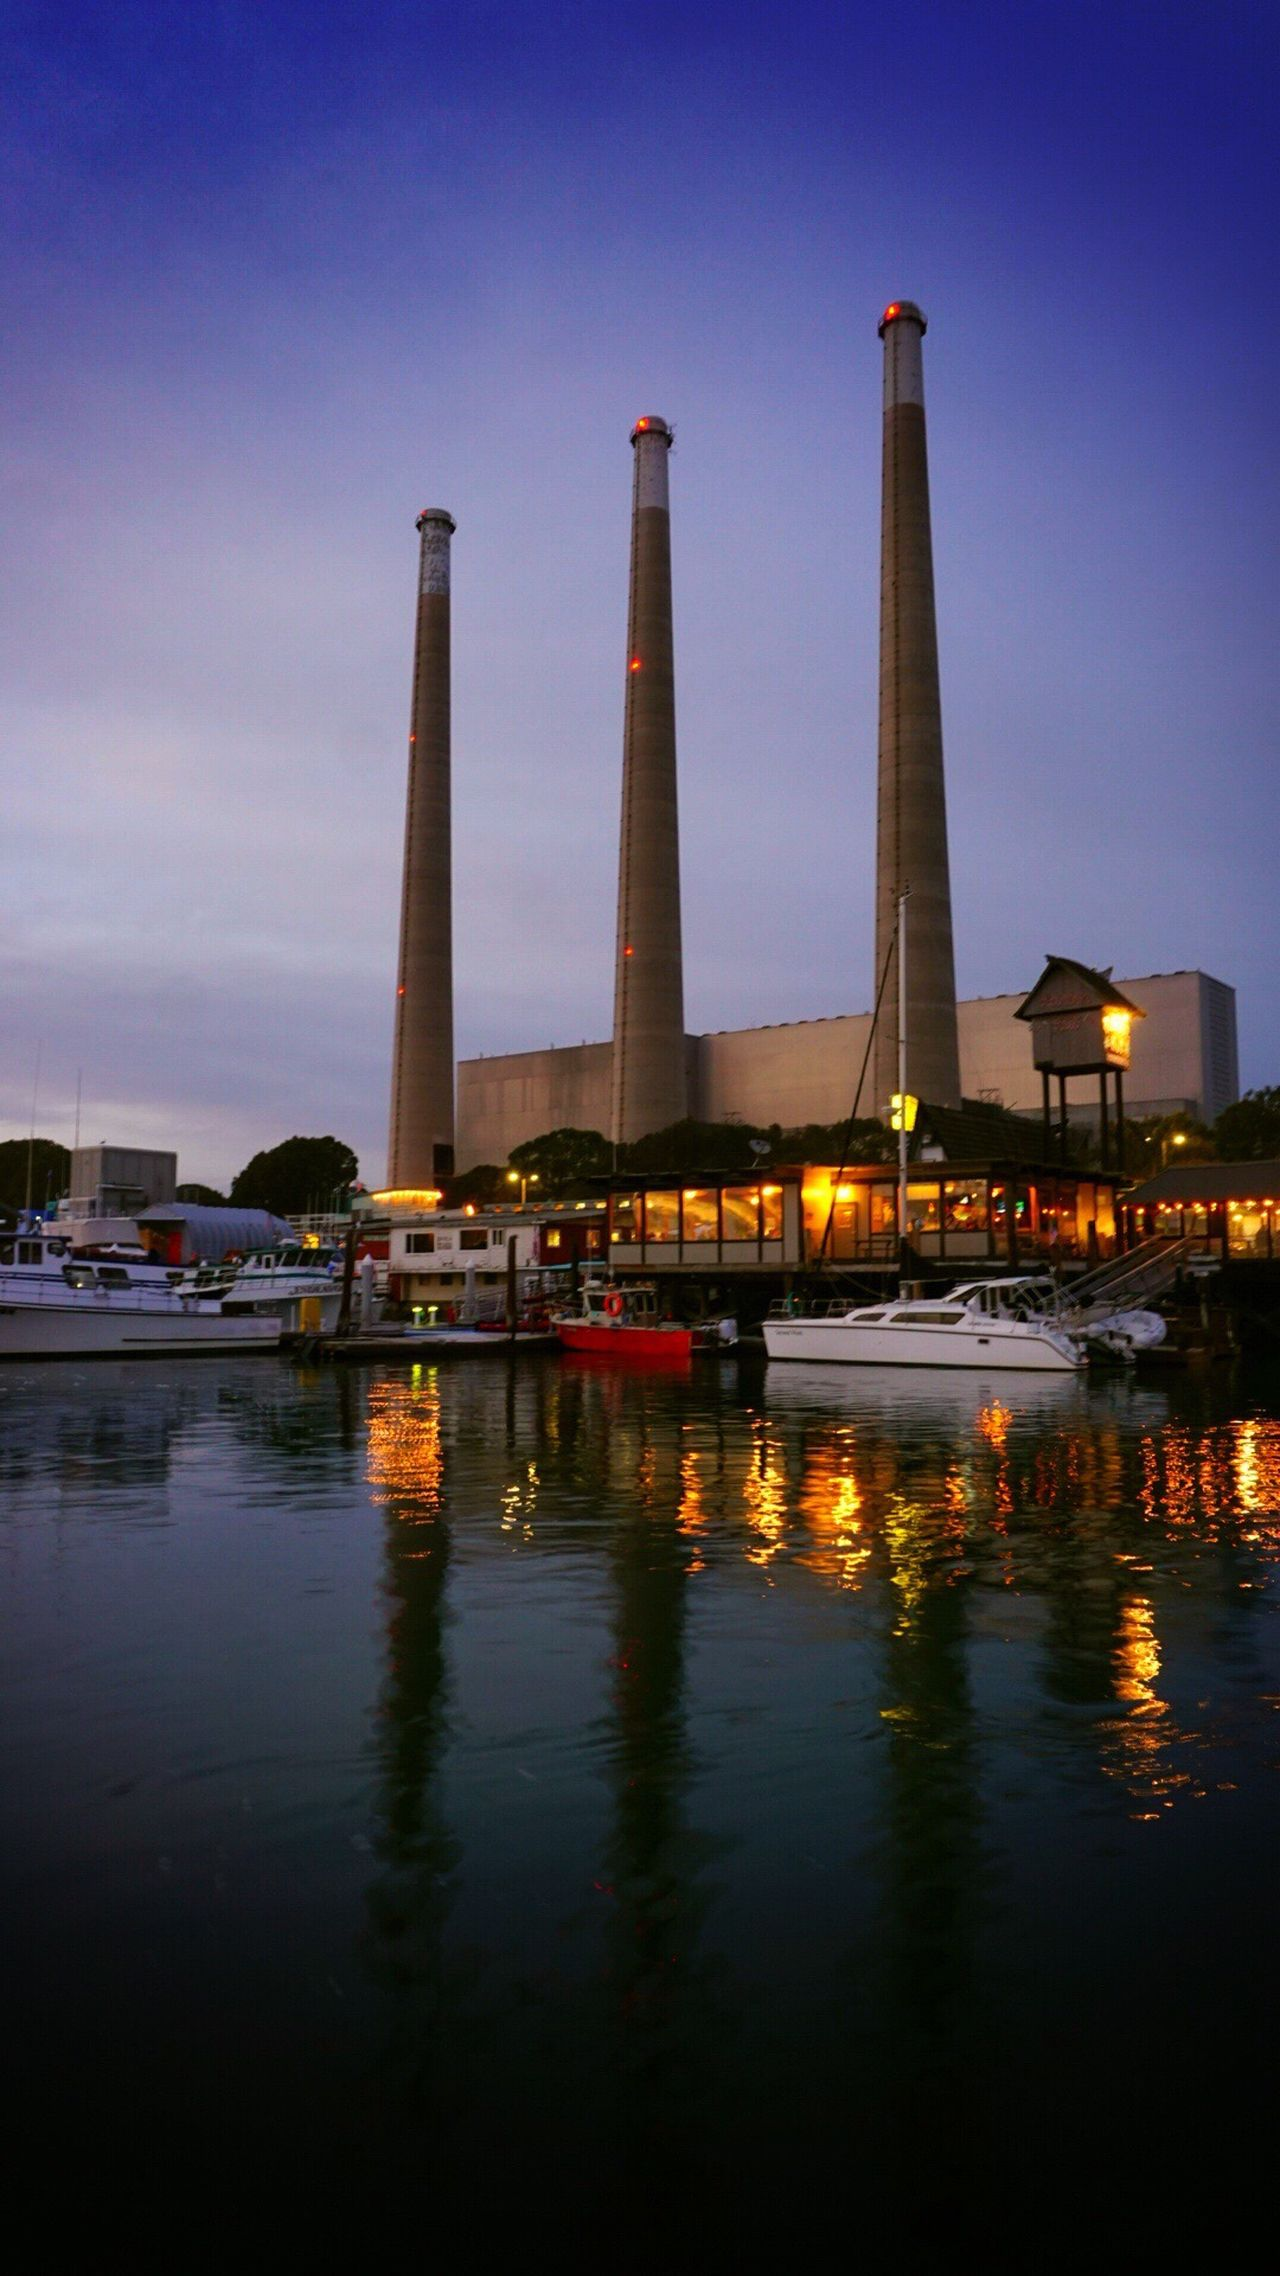 Reflection Sunset Water Sky Built Structure Architecture Waterfront Outdoors No People City Day Morro Bay, California Morro Bay Energy Plant Ocean